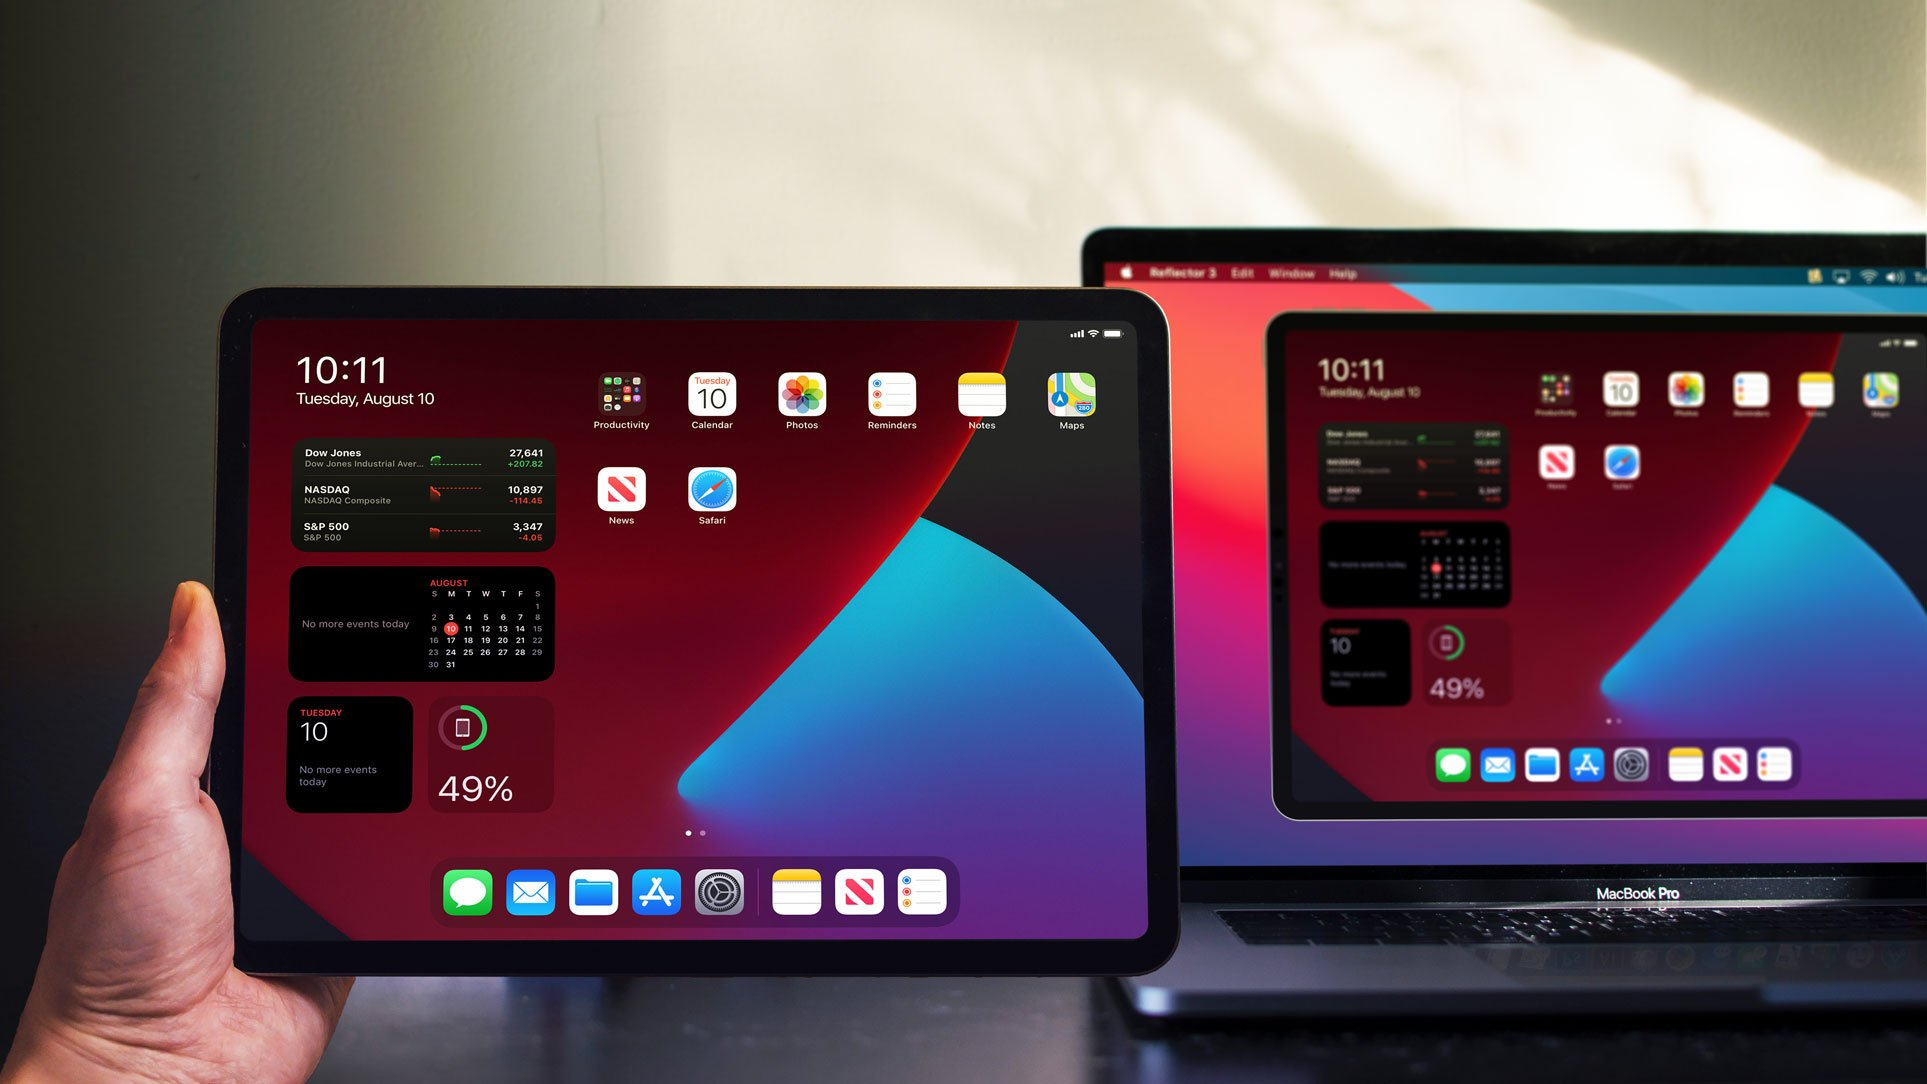 iPadOS 14 iPad screen mirroring to computer